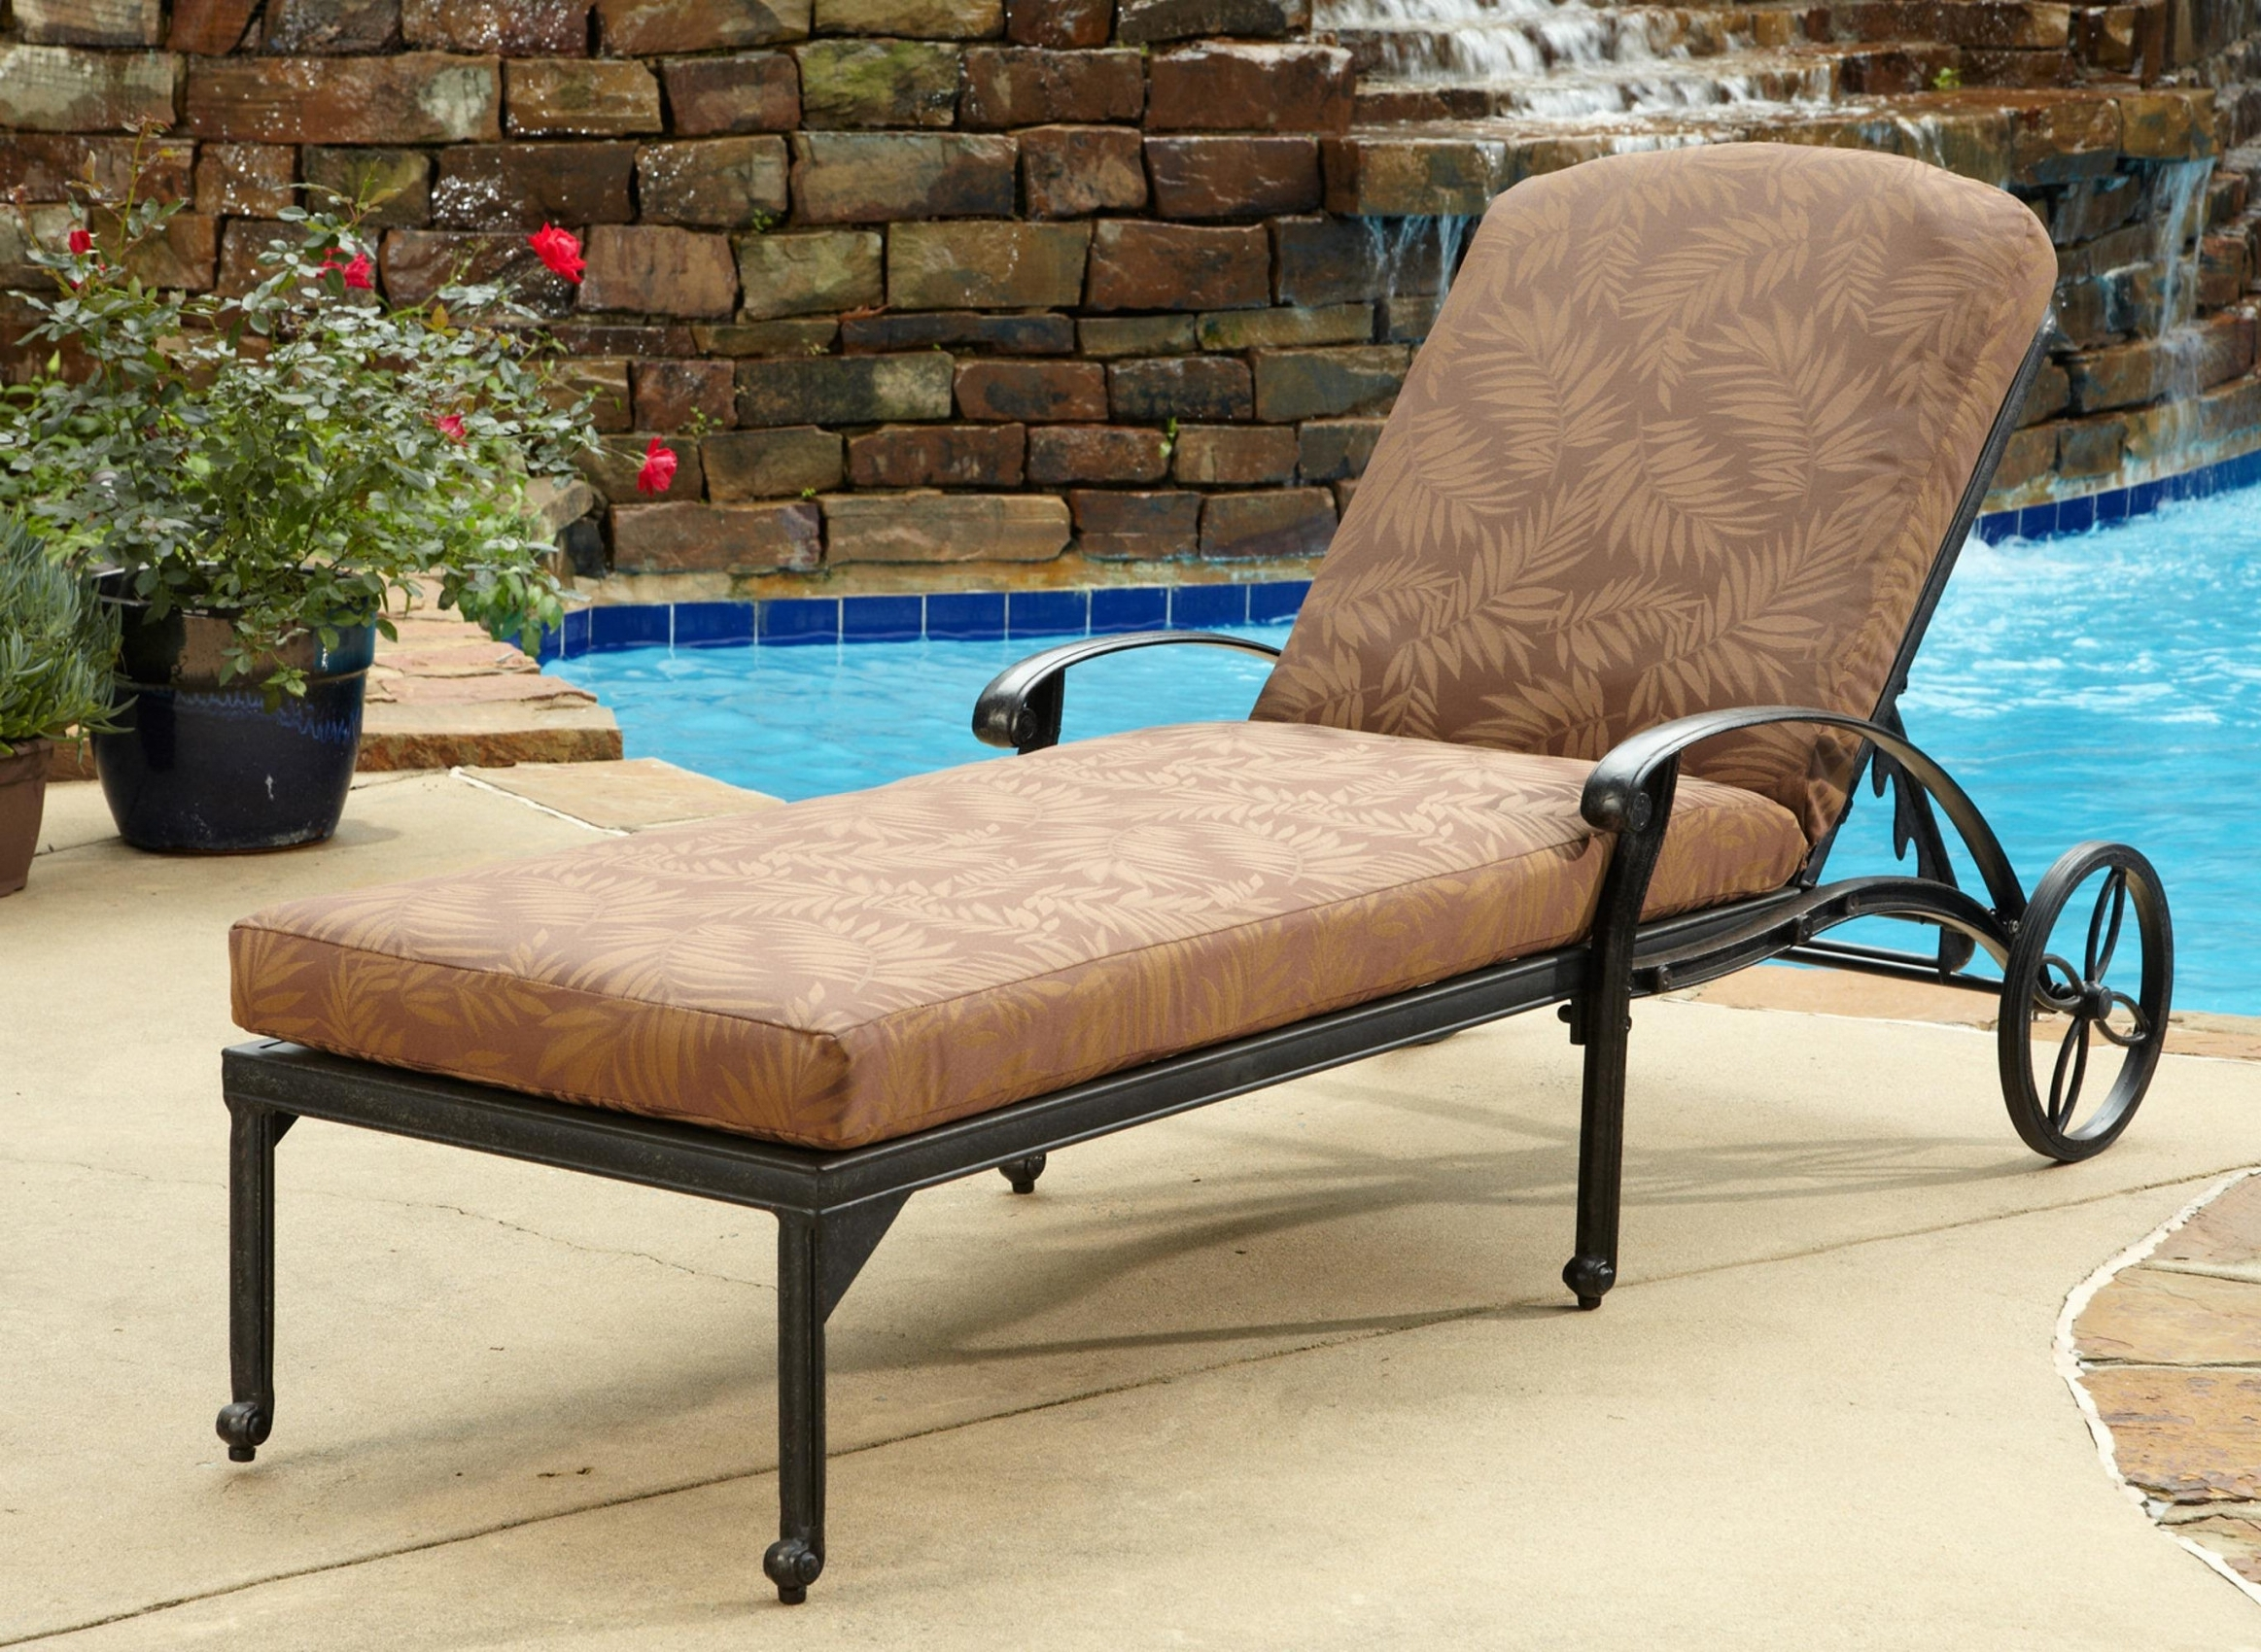 Outdoor Pool Furniture Chaise Lounges In Well Liked Lounge Chair : Outdoor Couch Sling Chaise Lounge Chairs Outdoor (View 3 of 15)